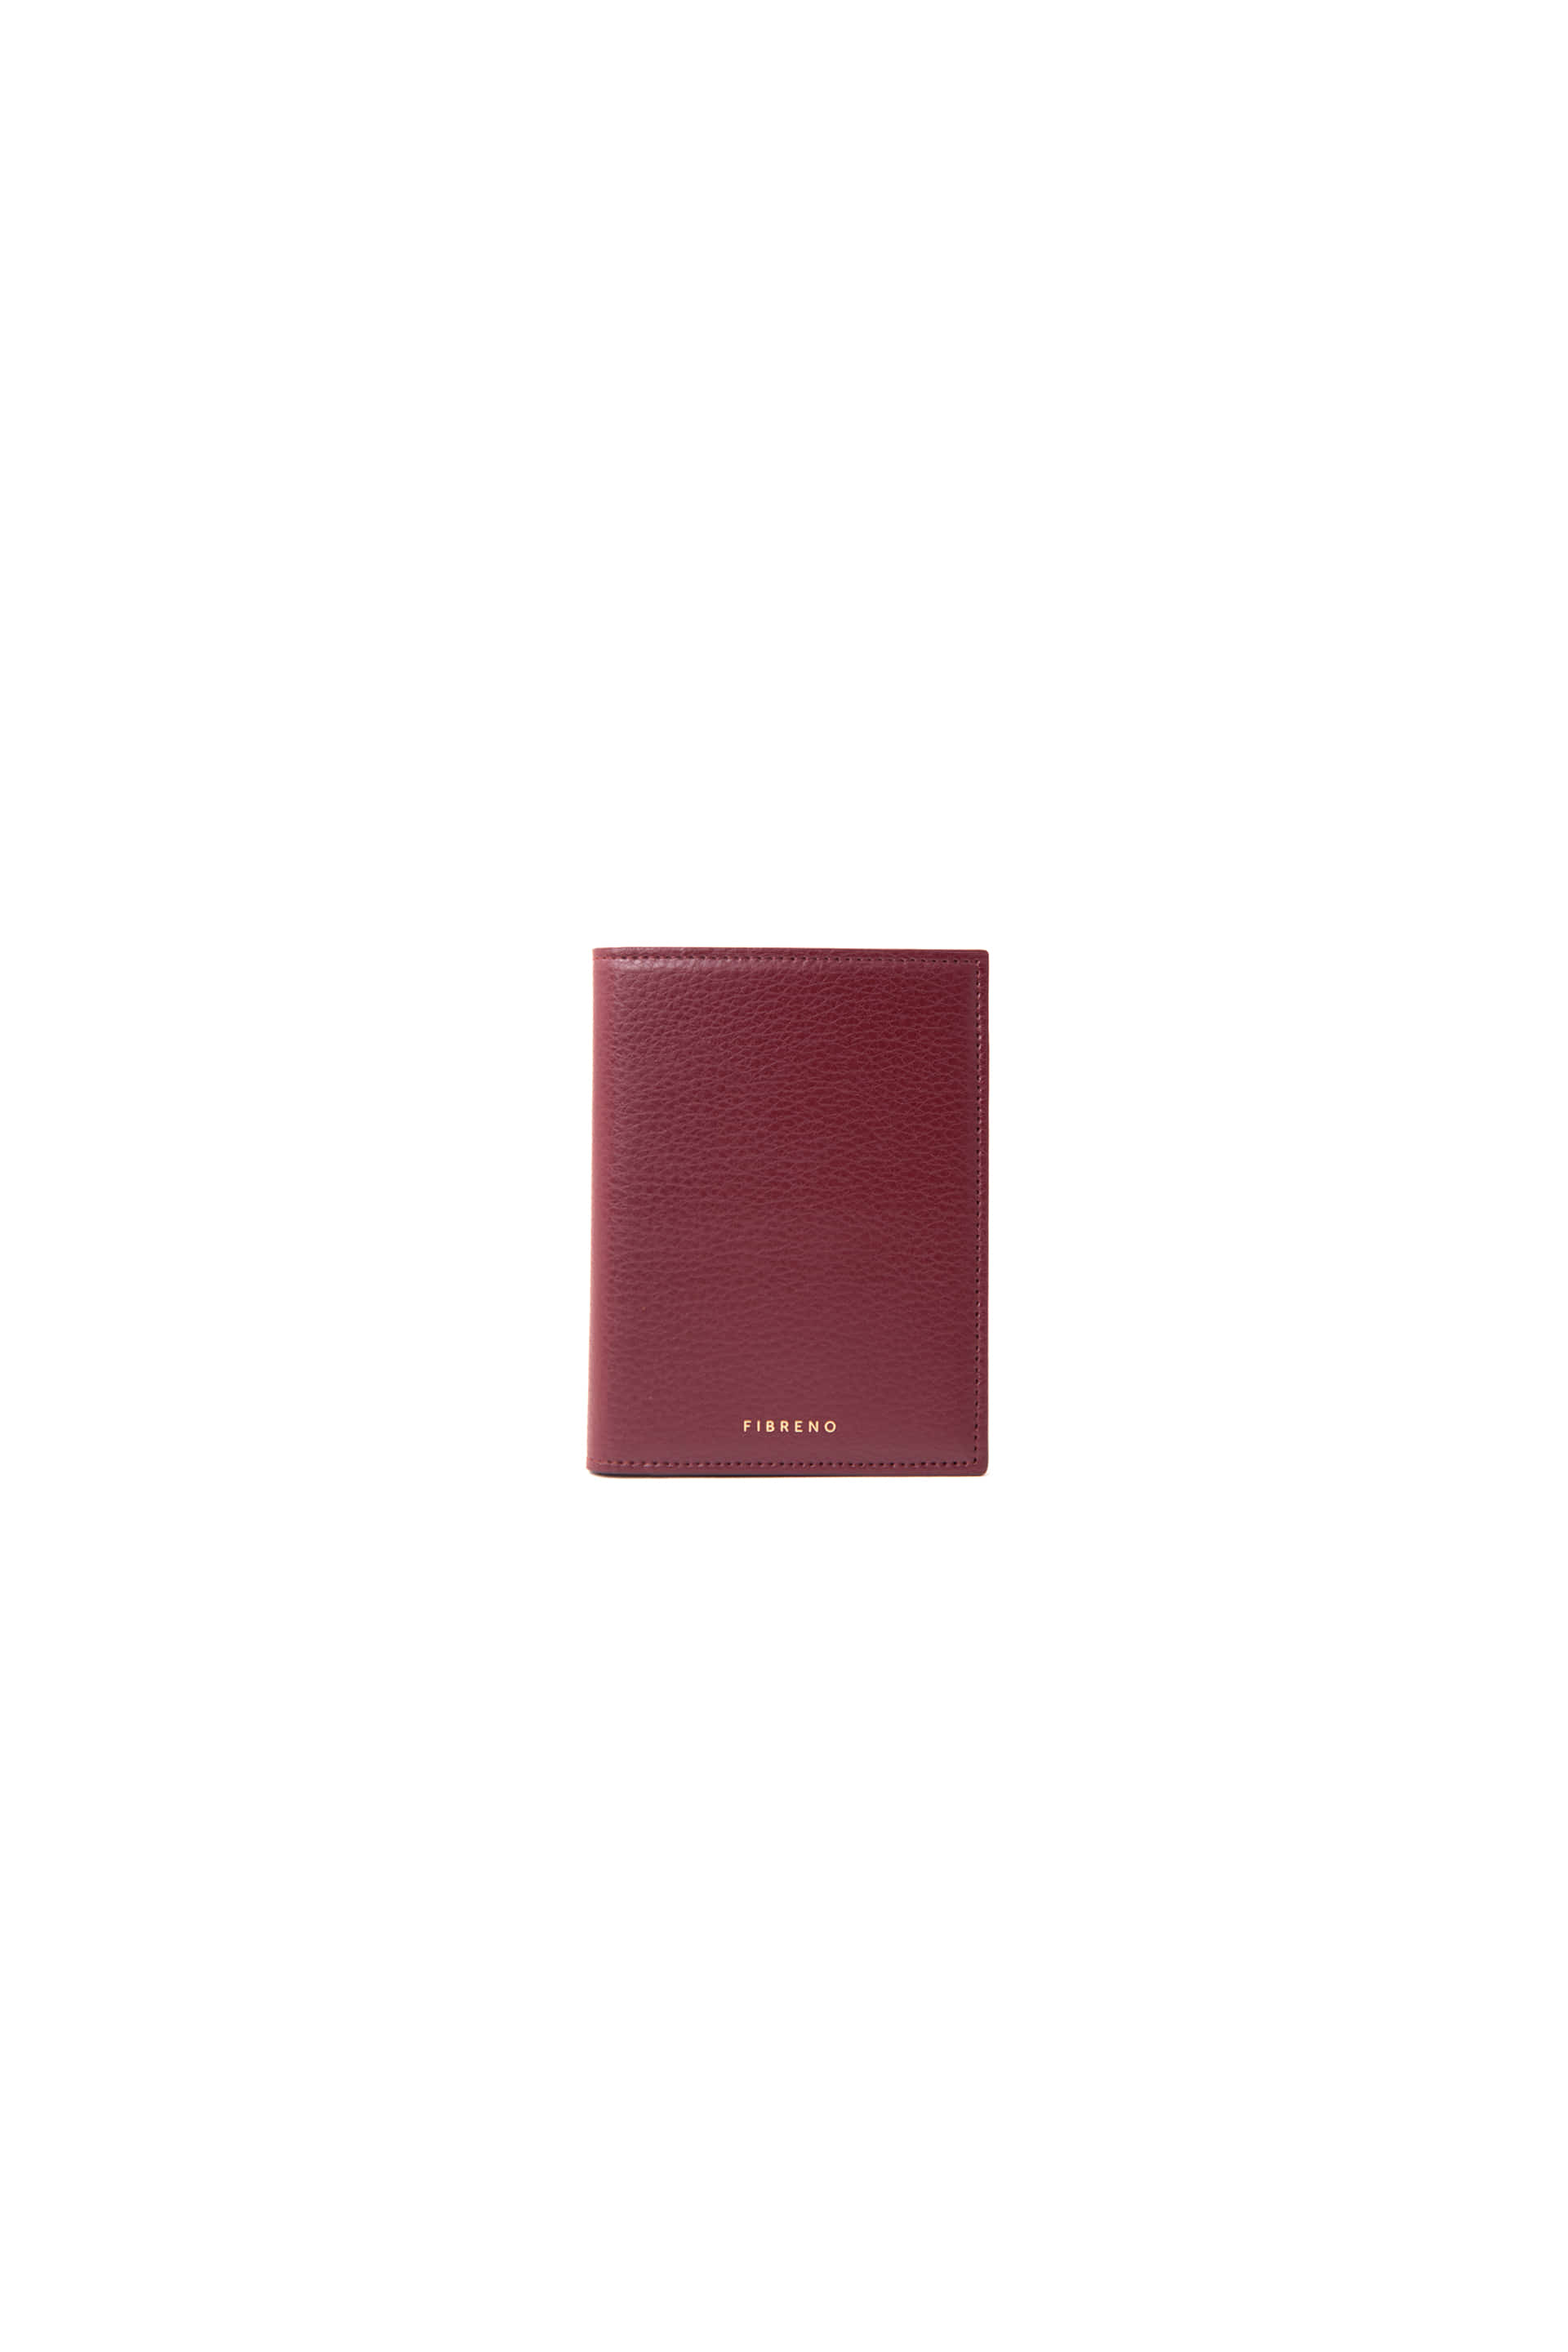 PASSPORT CASE 17 Vino Wine